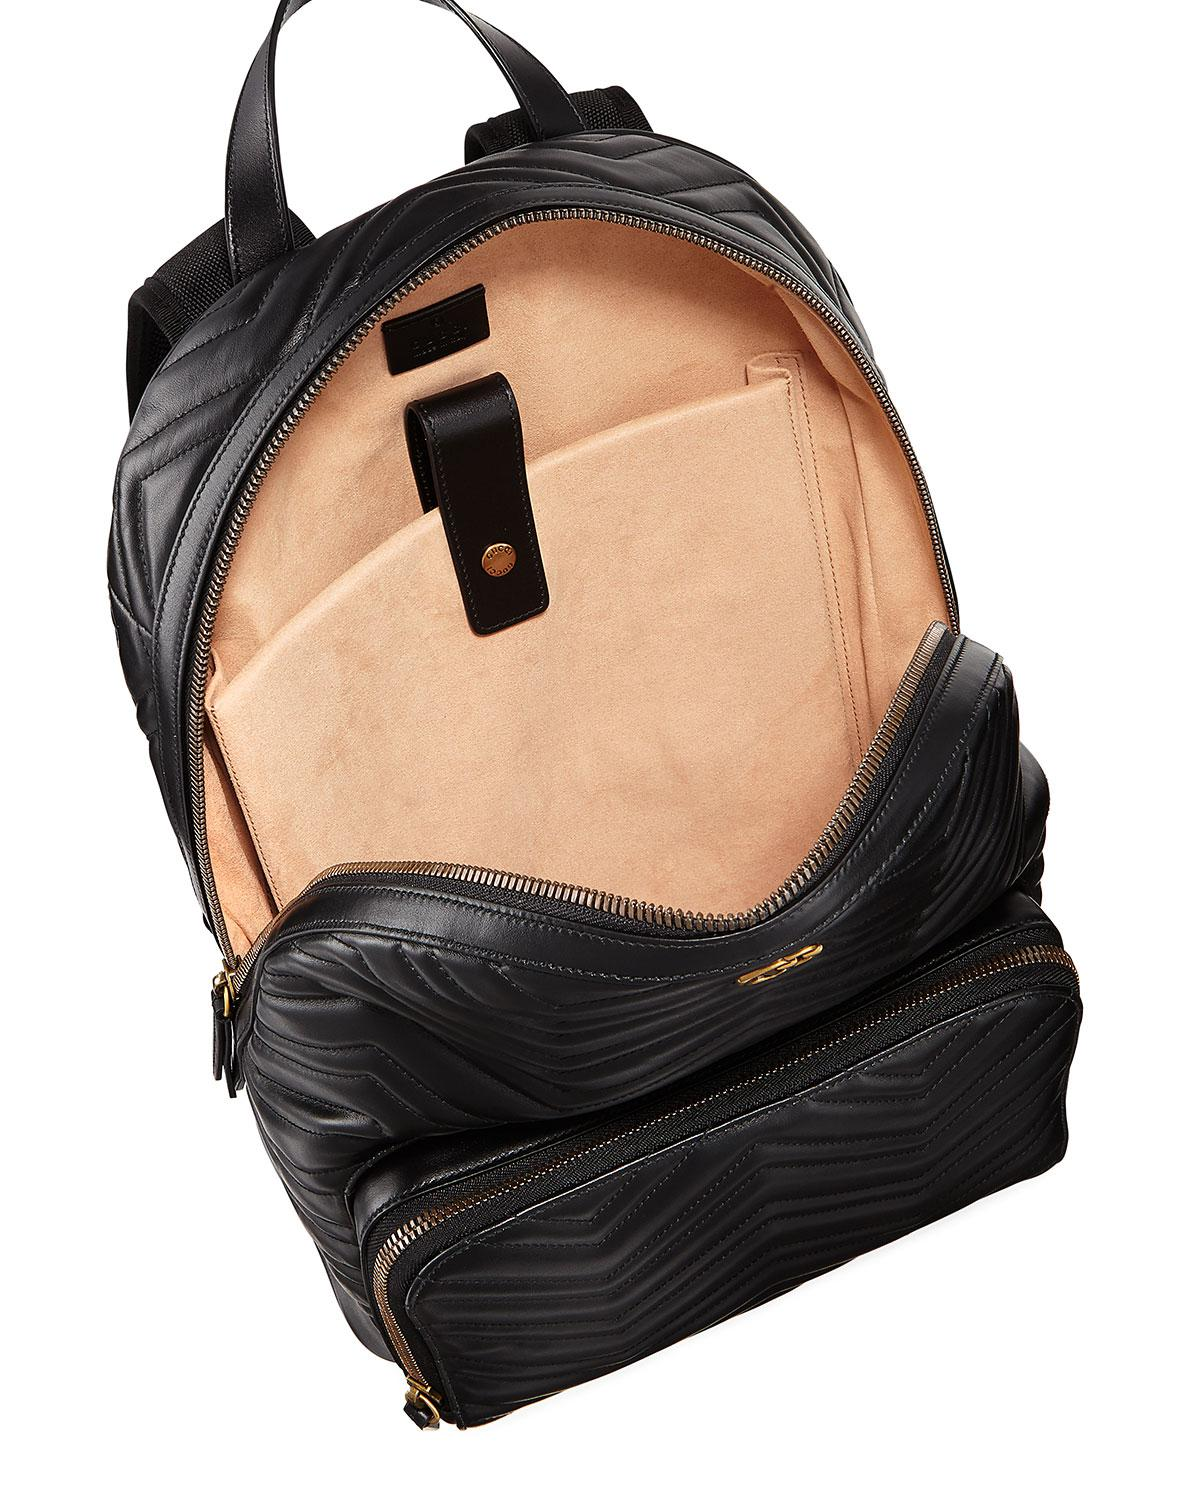 96171435b933 Gucci Men's GG Marmont Quilted Leather Backpack in Black - Lyst